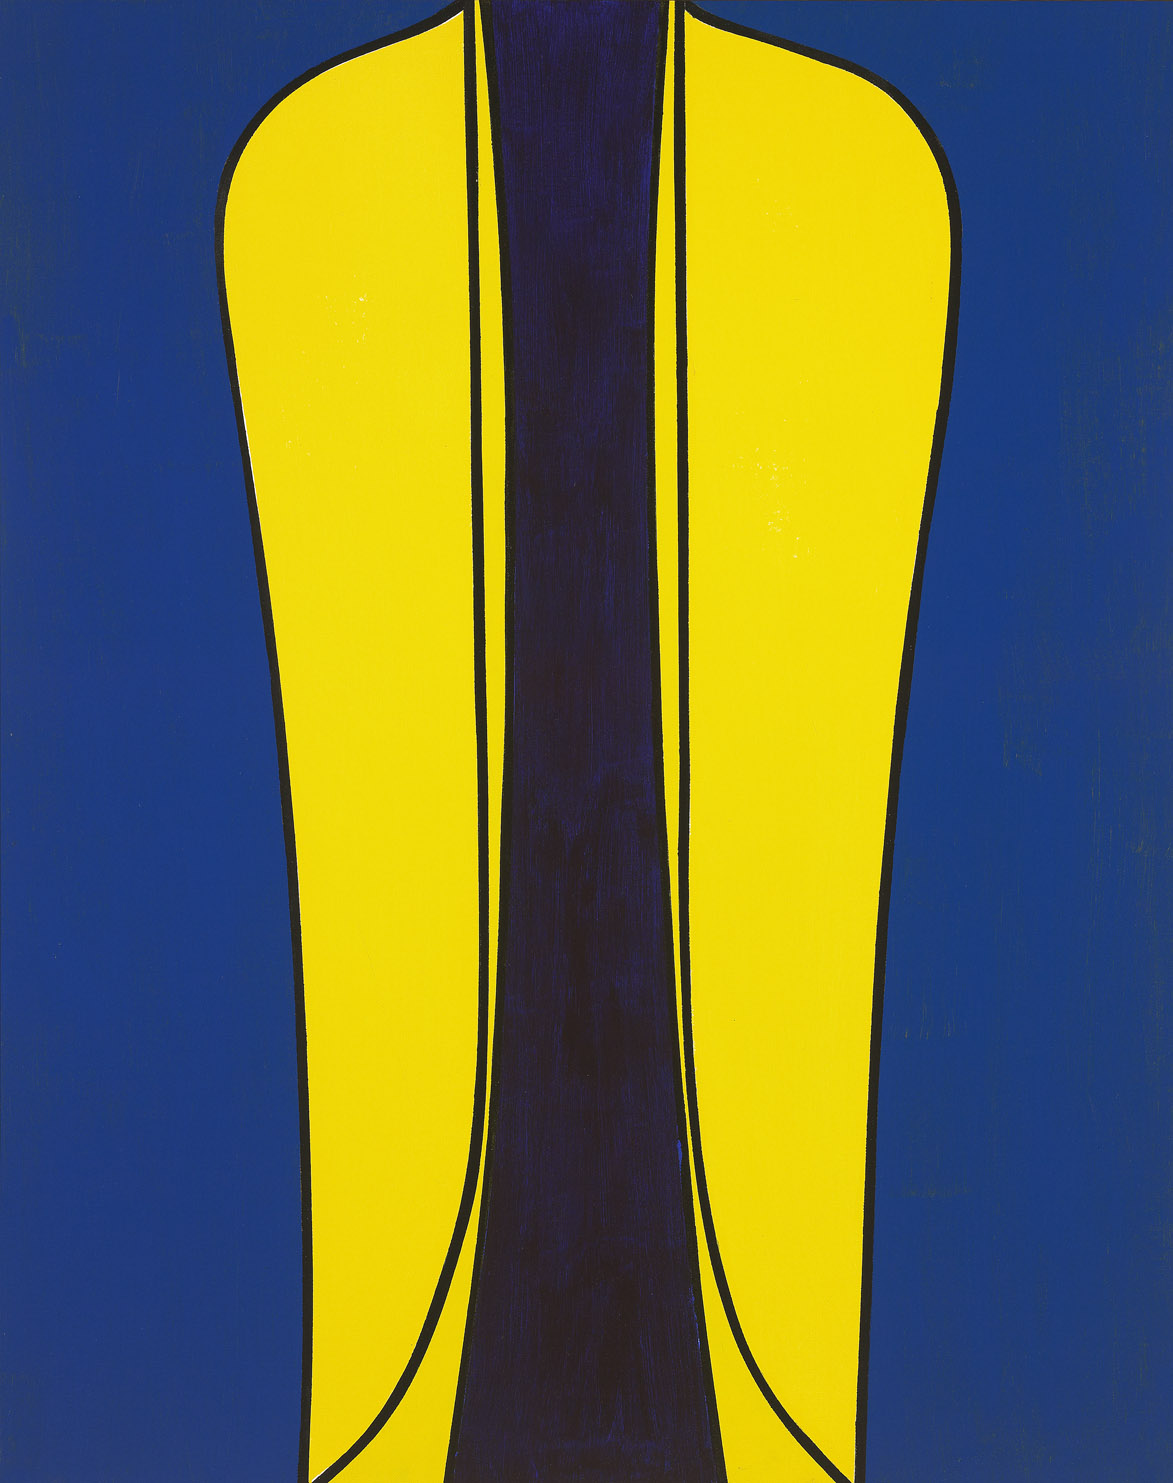 Archimage I , 1976  acrylic on canvasboard 30 x 24 inches; 76.2 x 61 centimeters